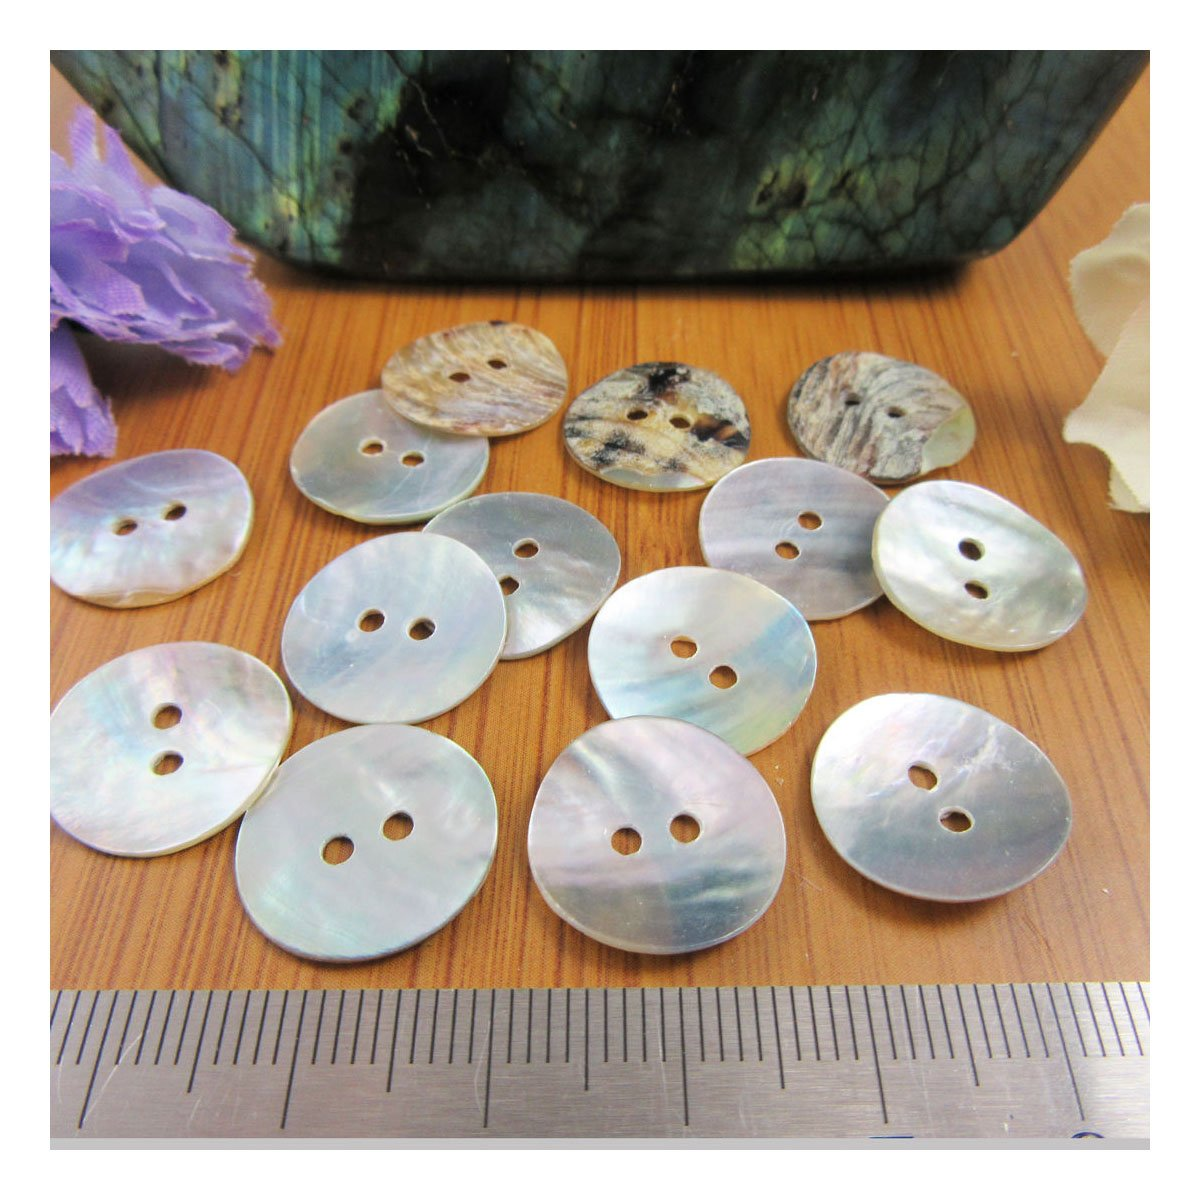 Beads4crafts MOTHER OF PEARL SHELL BUTTONS NATURAL PEARLESCENT * 9 SIZES * (9mm (40 pcs) H2502)